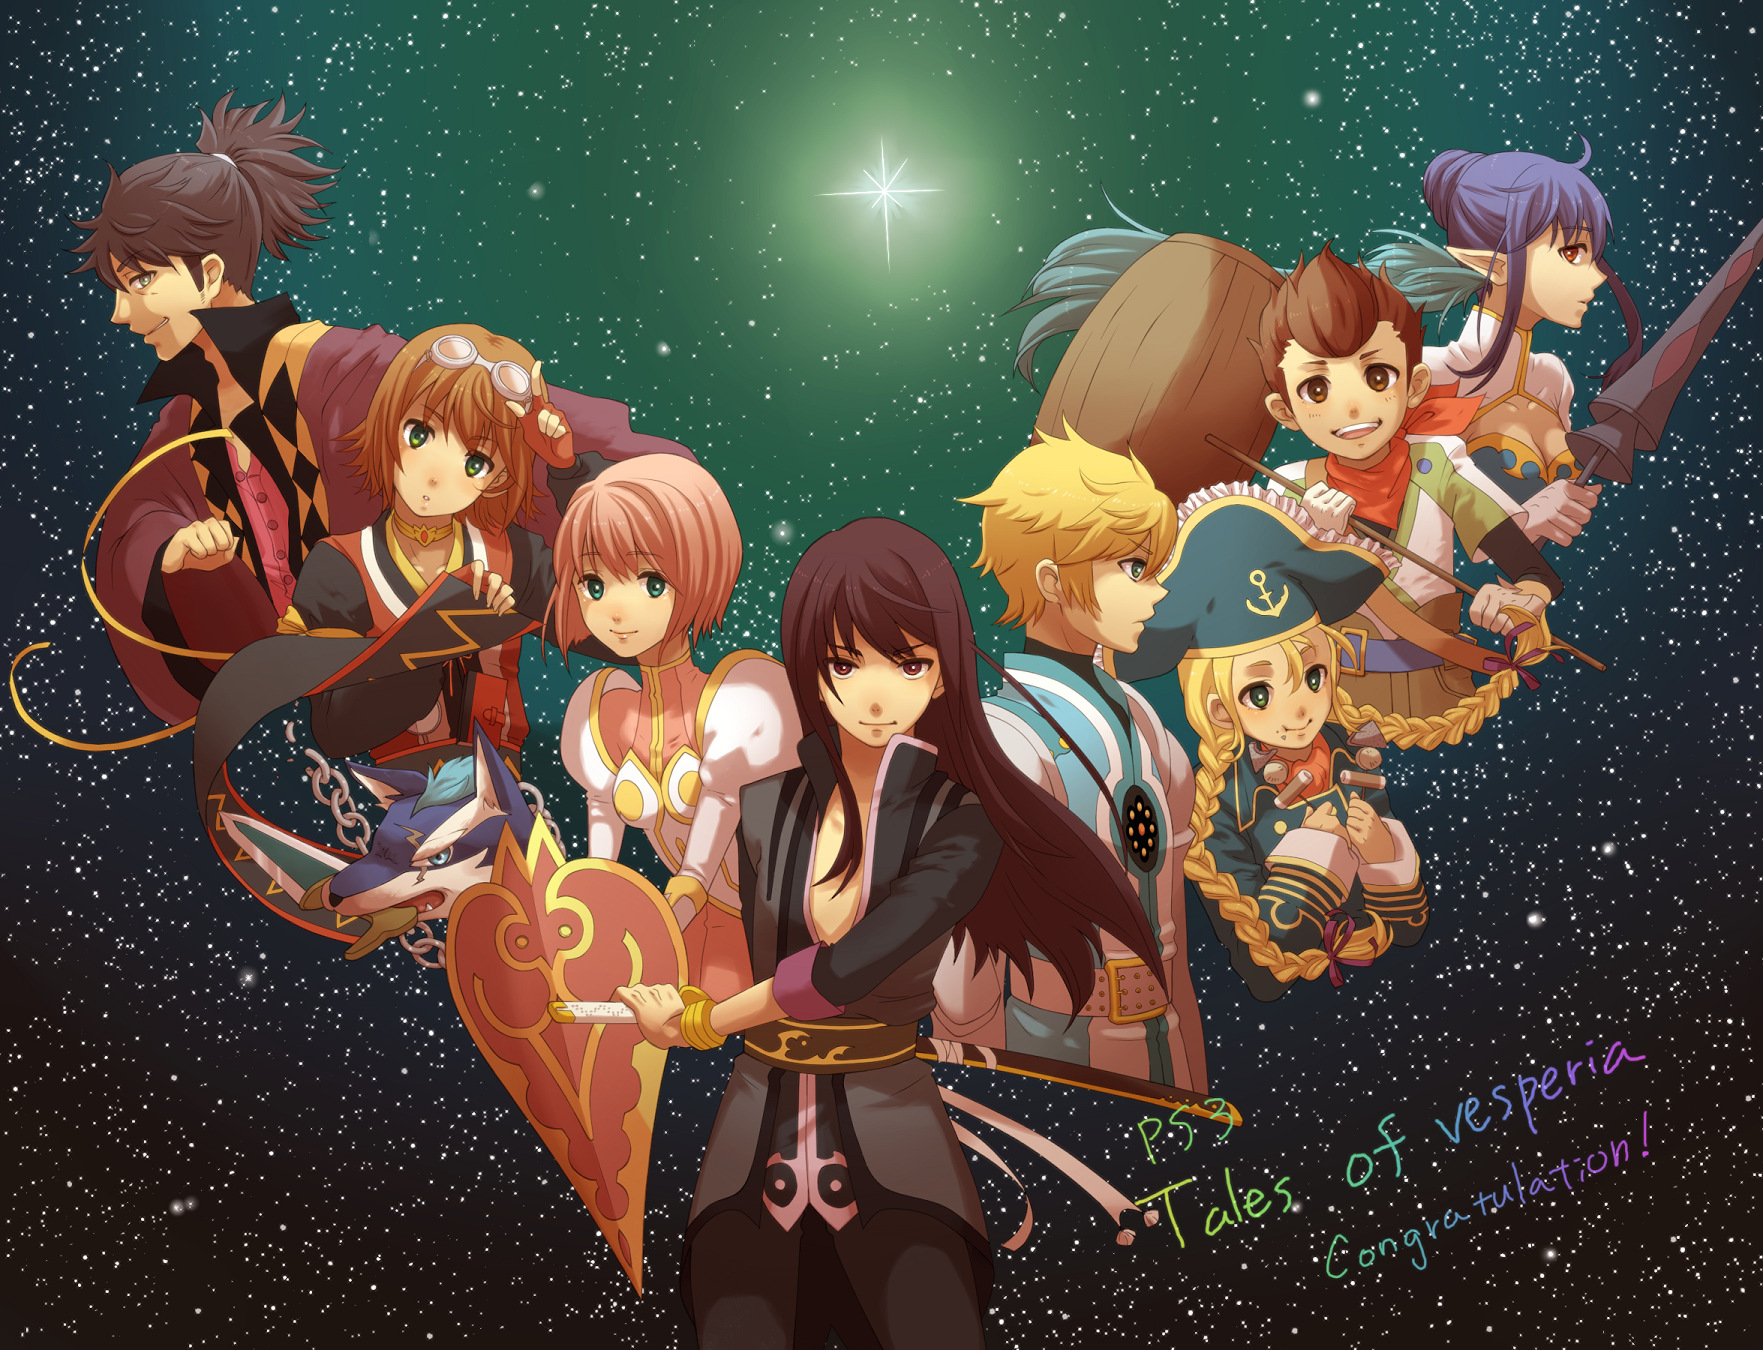 Download Anime Tales Of Vesperia Wallpaper 1763x1350 1763x1350